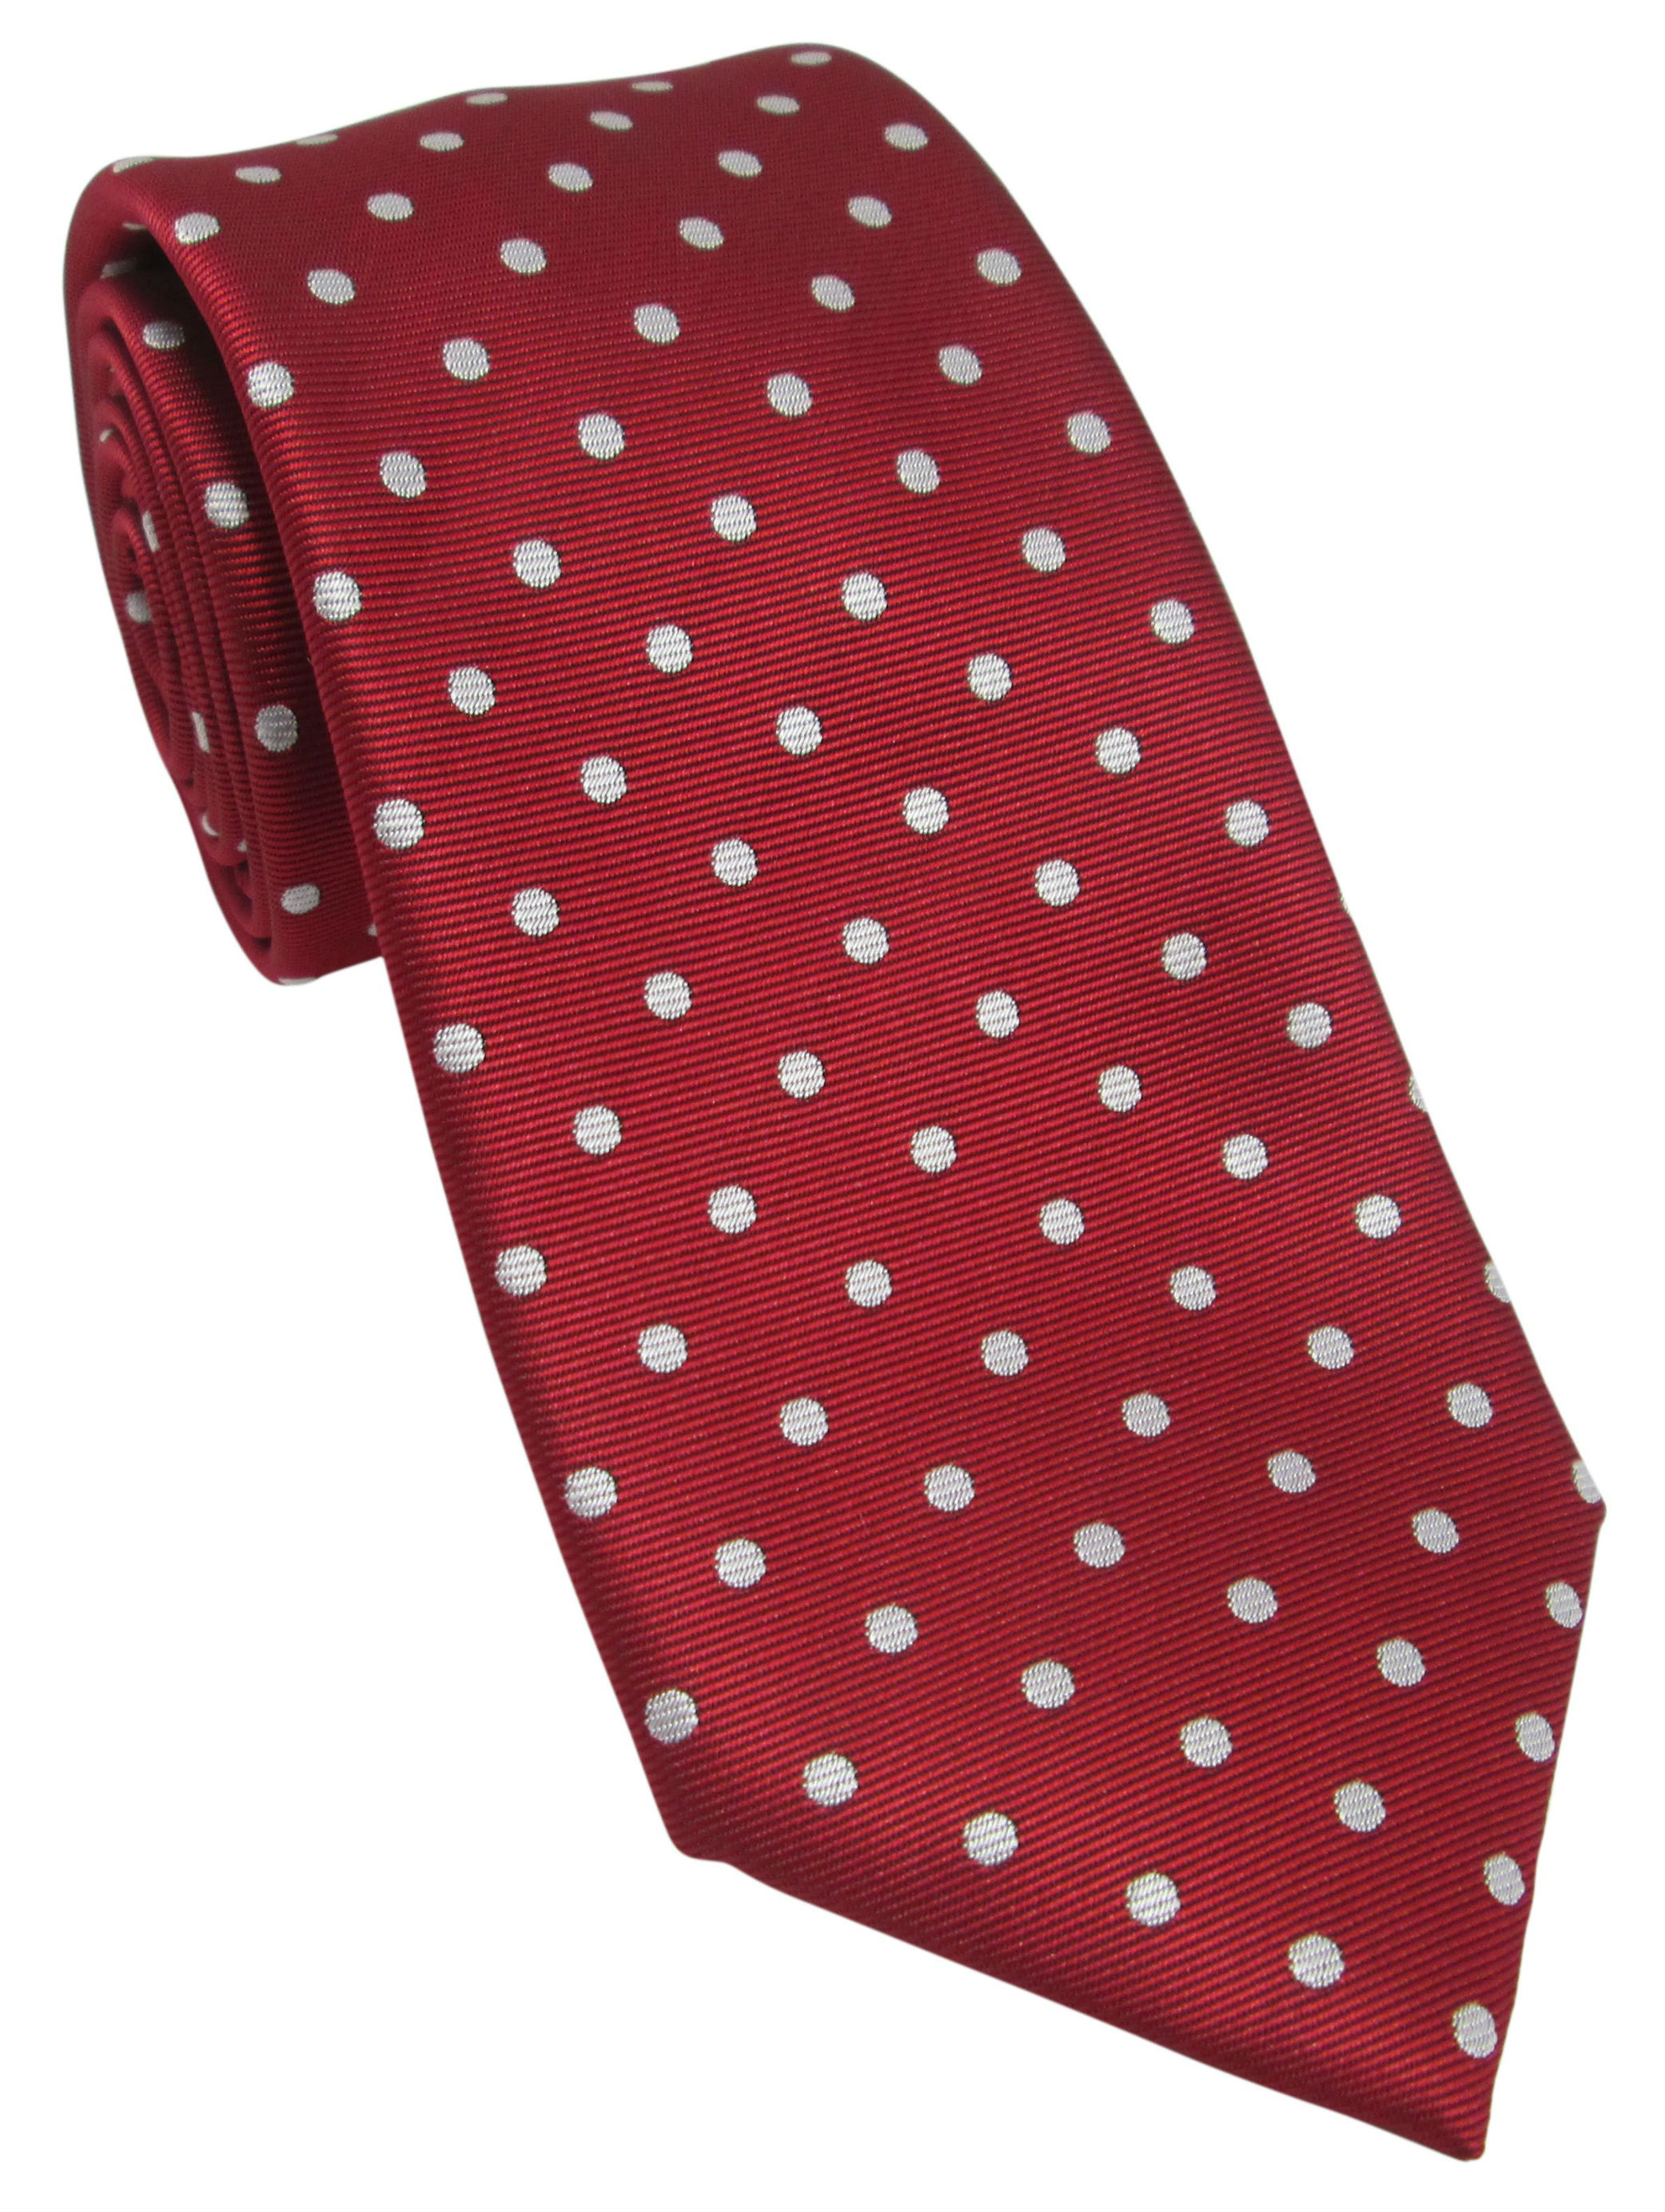 Red with Polka Dot Tie